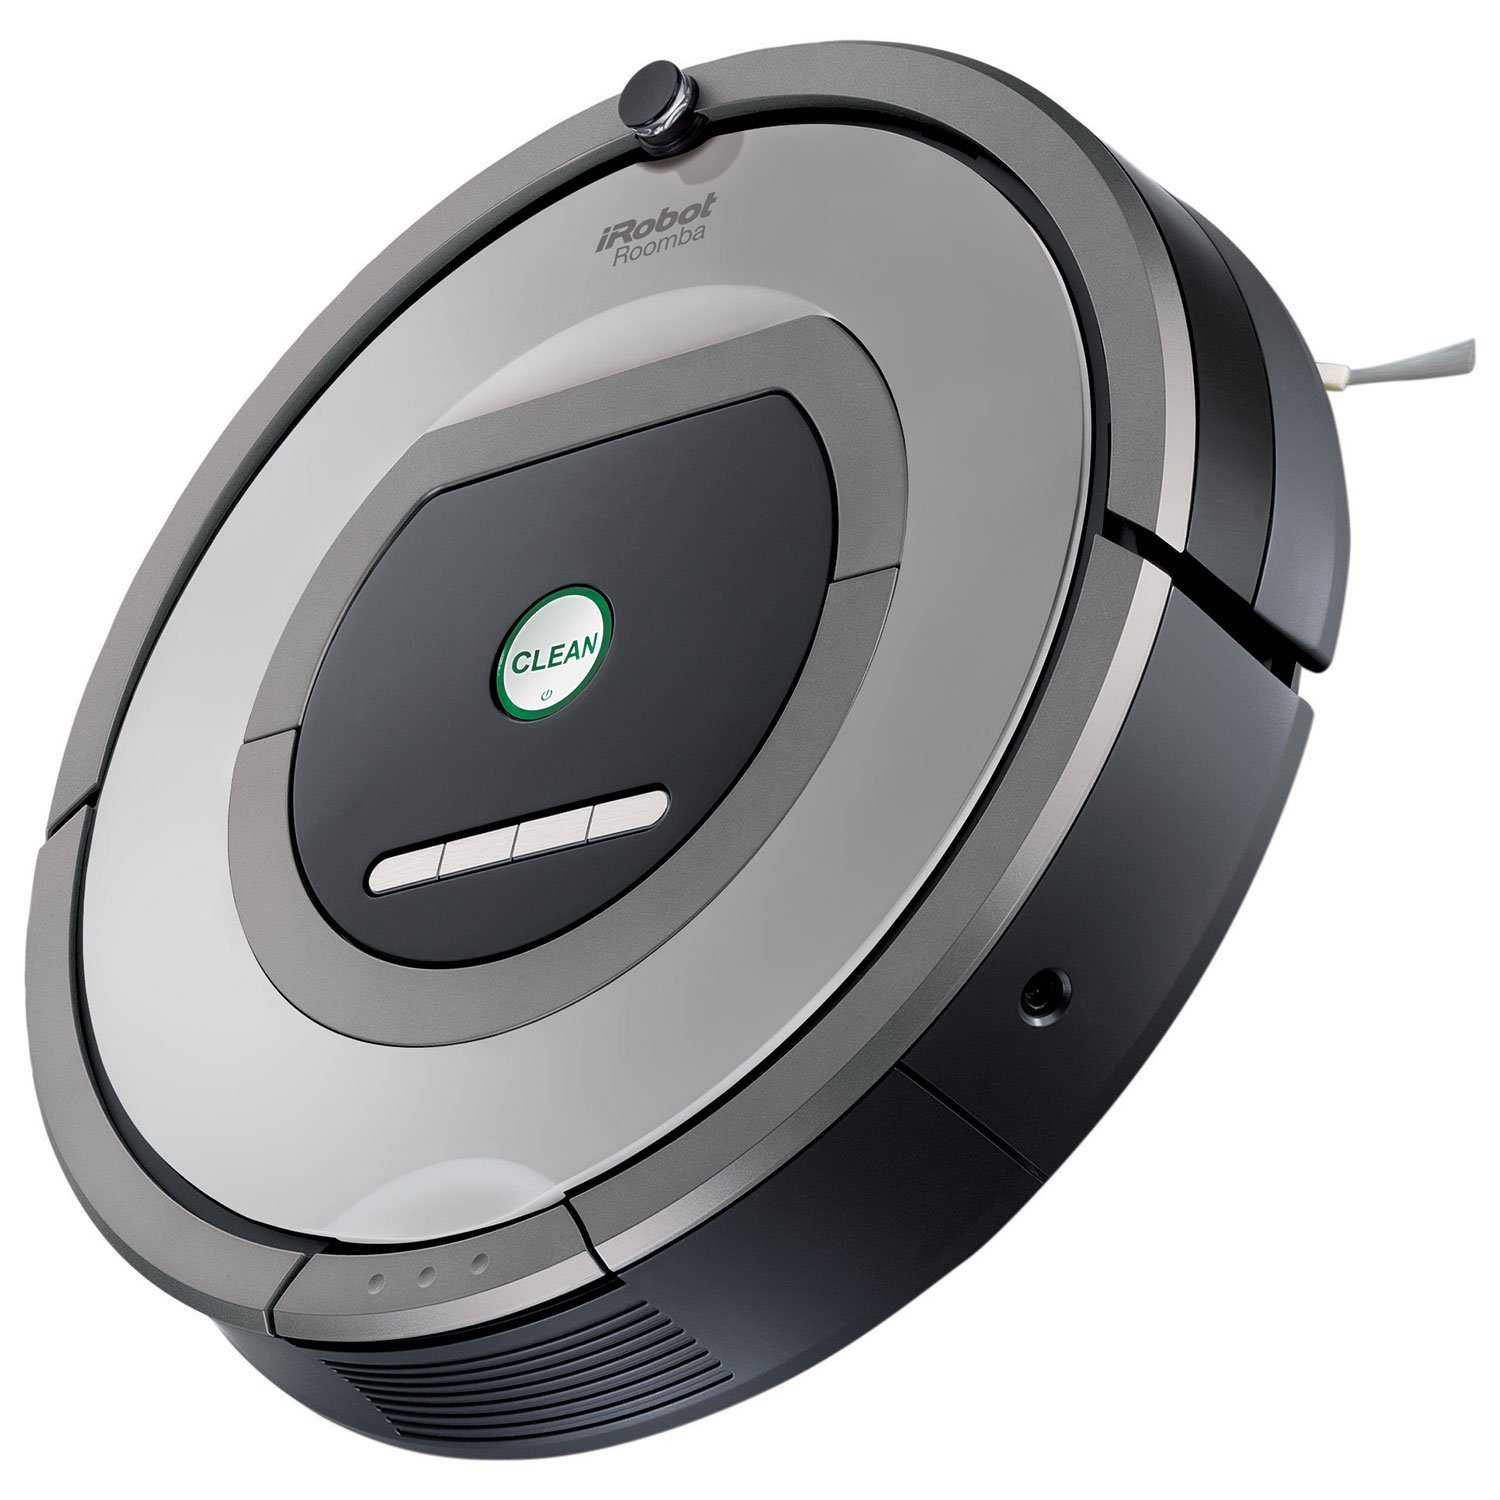 irobot Roomba 761 vacuum cleaner review